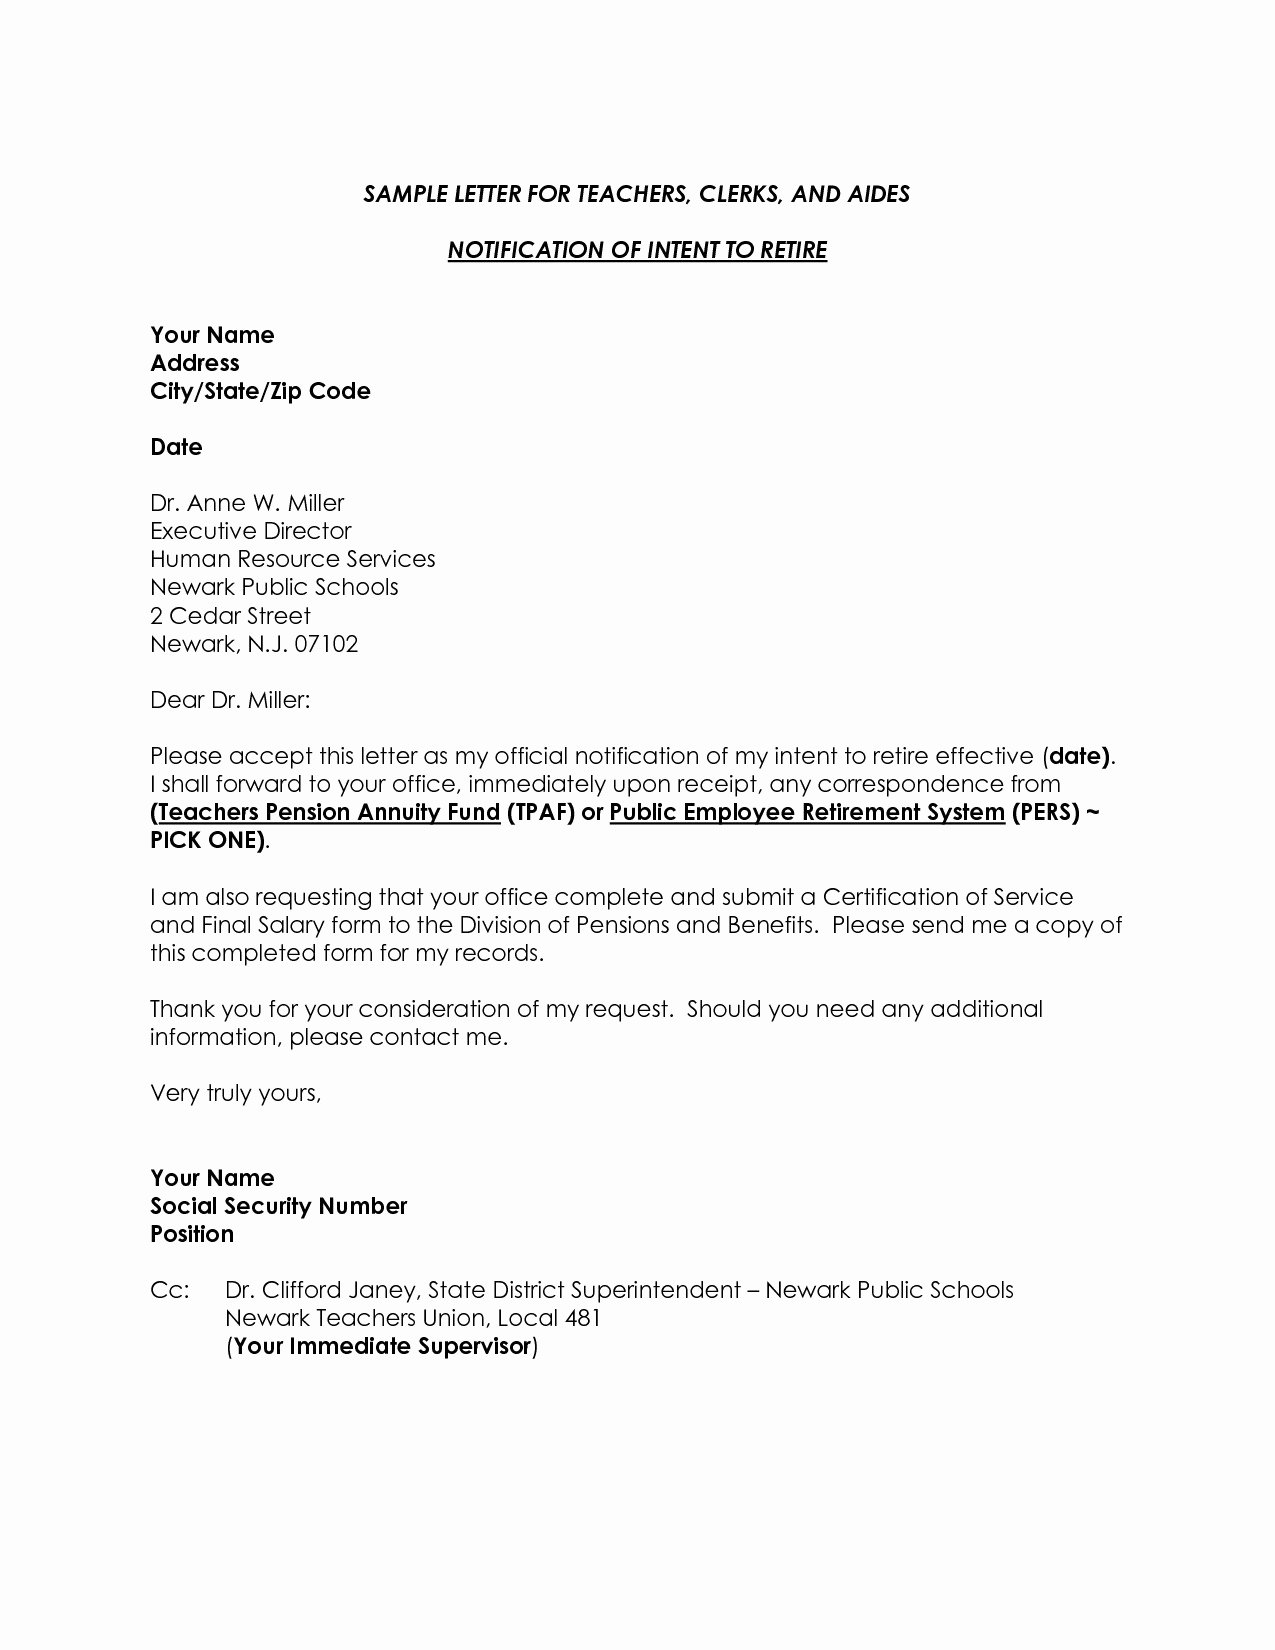 Retirement Letters to Employers Beautiful Retirement Letter to Employer Template Samples